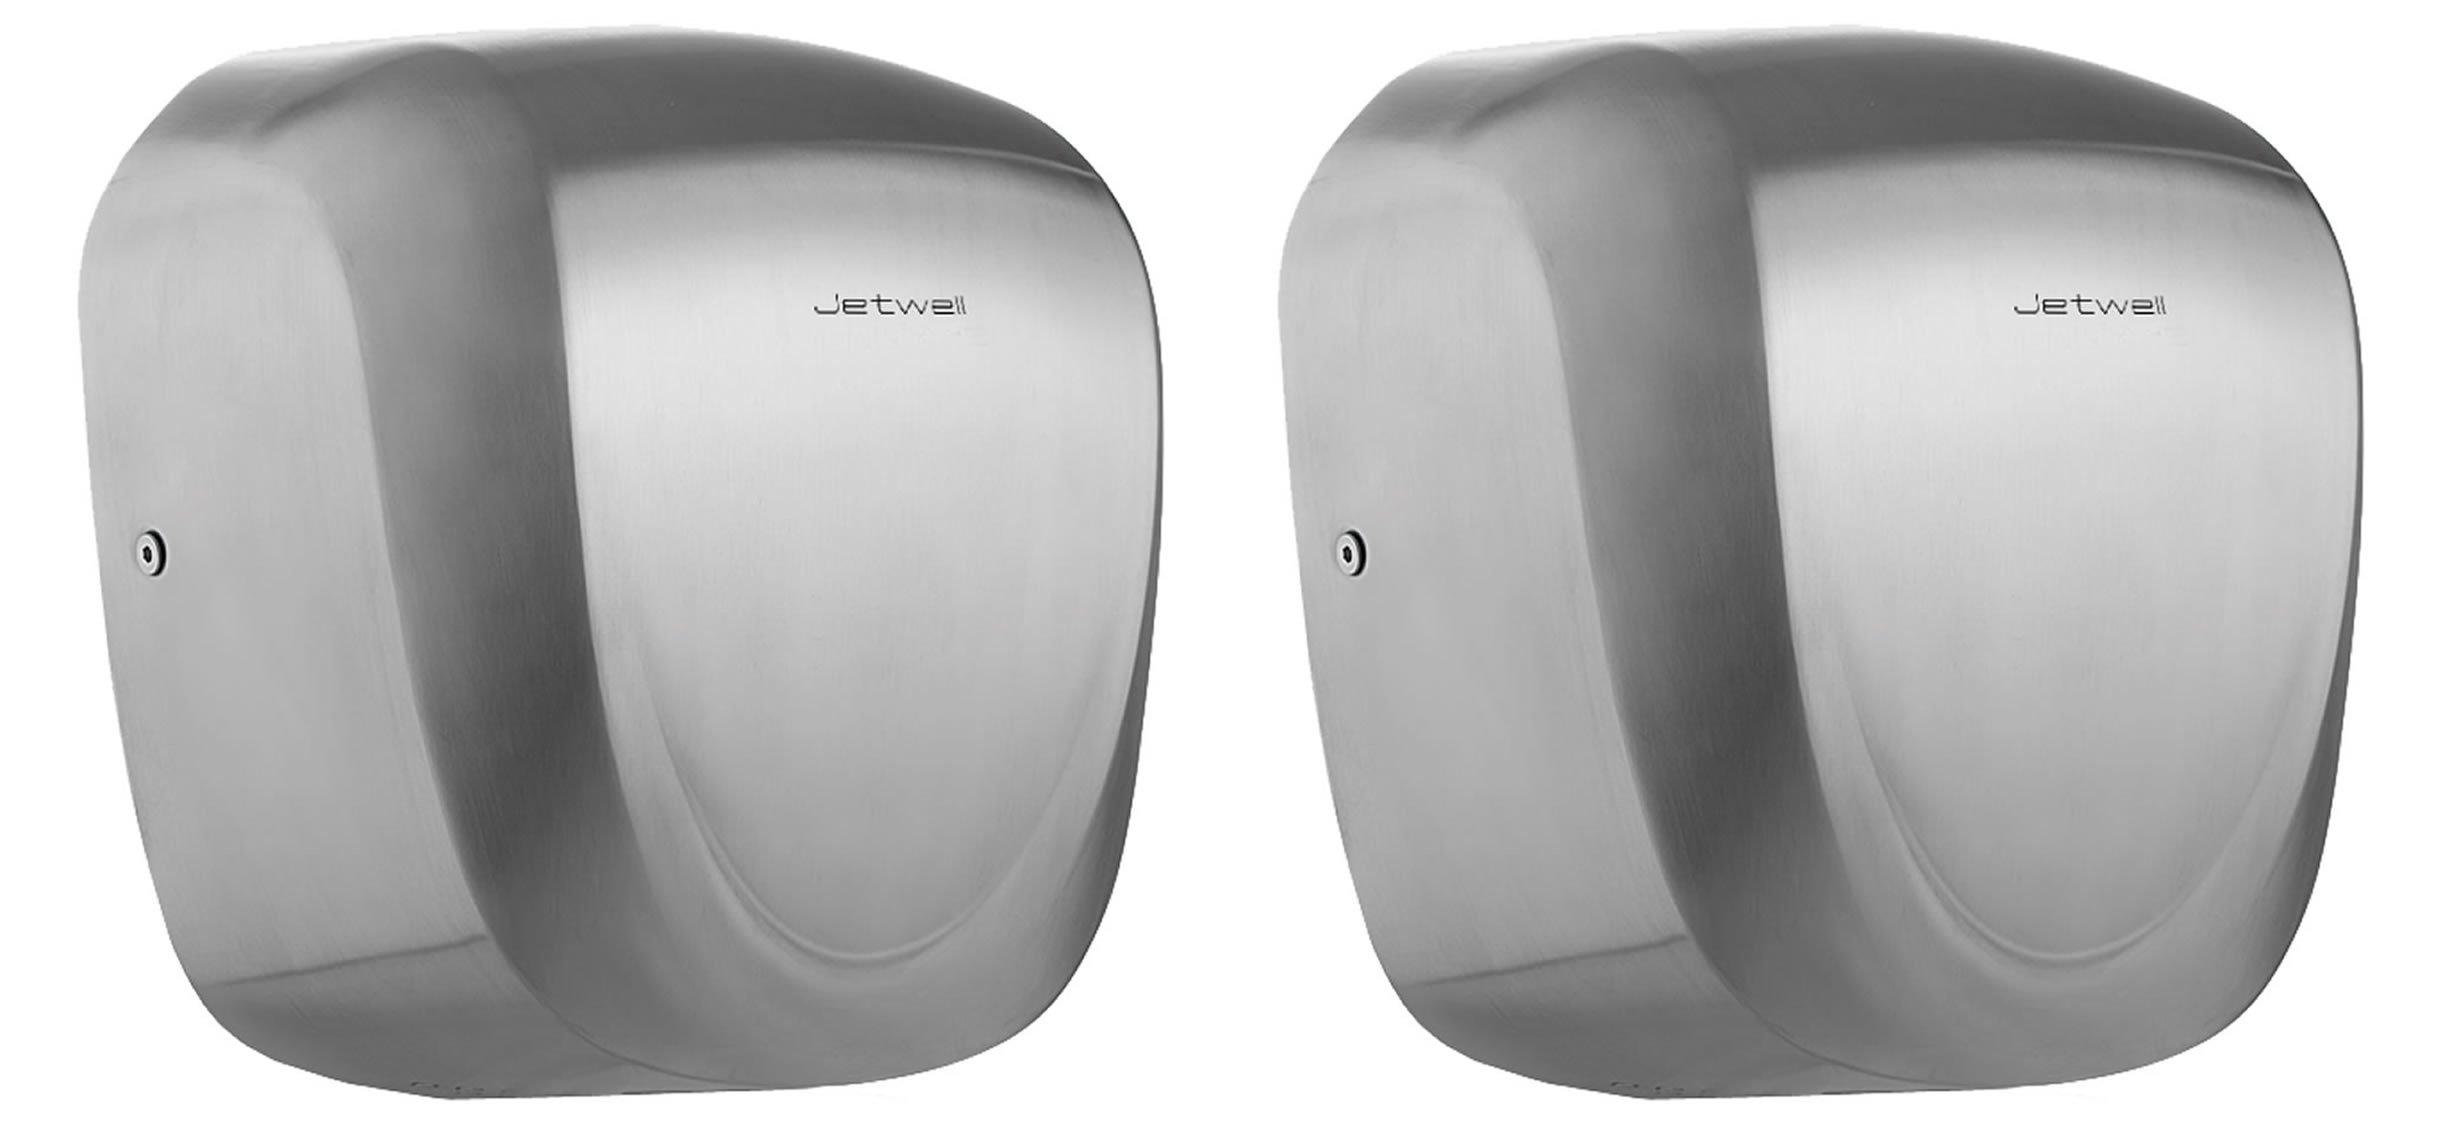 Jetwell (2 Pack High Speed Commercial Automatic Eco Hand Dryer-Heavy Duty Stainless Steel-Hot Air Hand Blower